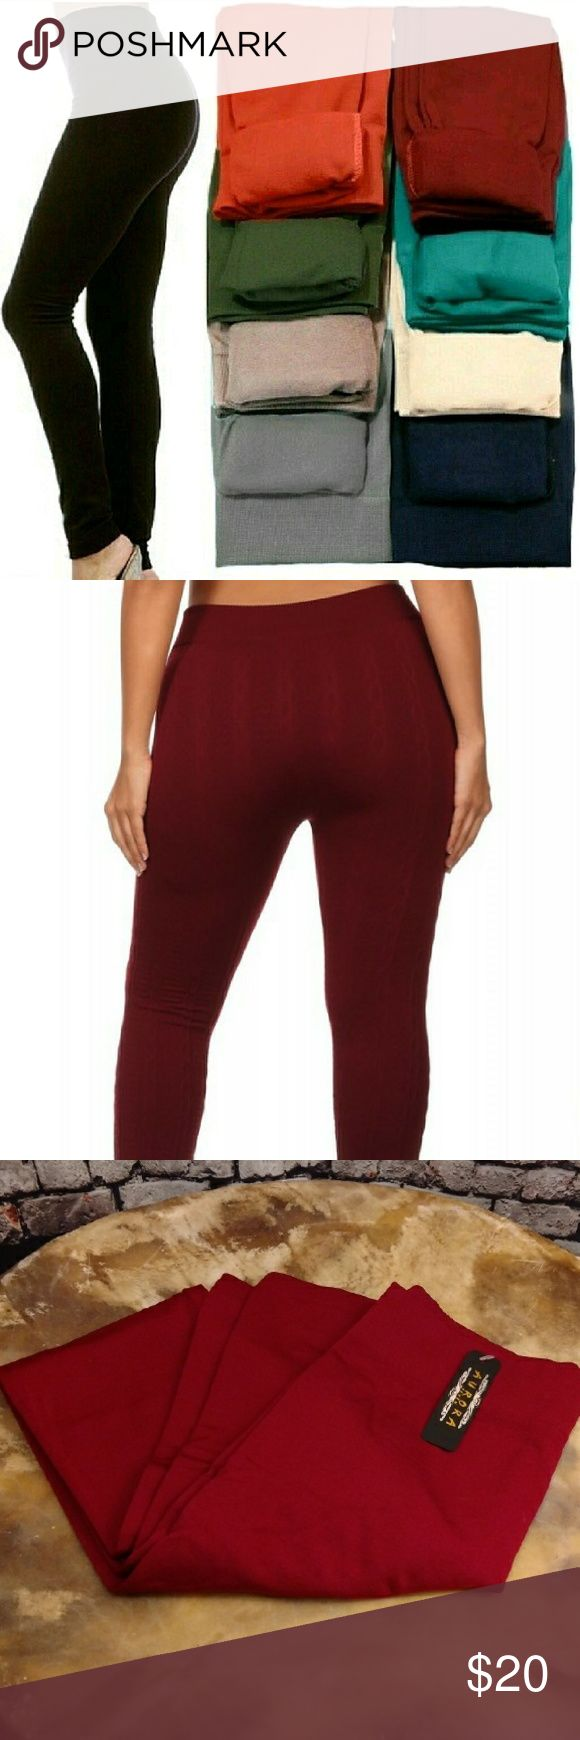 ‼️CLEARANCE‼️WINE Fleece Lined Leggings 🔘ONE SIZE FITS MOST🔘 (best fits S, M, L )  Super soft, very stretchy and stylish fleece leggings \ footless tights. Looks like a regular sleek legging but inside is soft and cozy fleece that is warm & comfy. Warmth and style without bulkiness. 65% Polyester, 20% Cotton, 15% Spandex.  Available in other listings: DK. BROWN, Black, CHARCOAL, MIDNIGHT BLUE & SAND.  🔴Price Firm Unless Bundled 🔴No Trades Pants Leggings